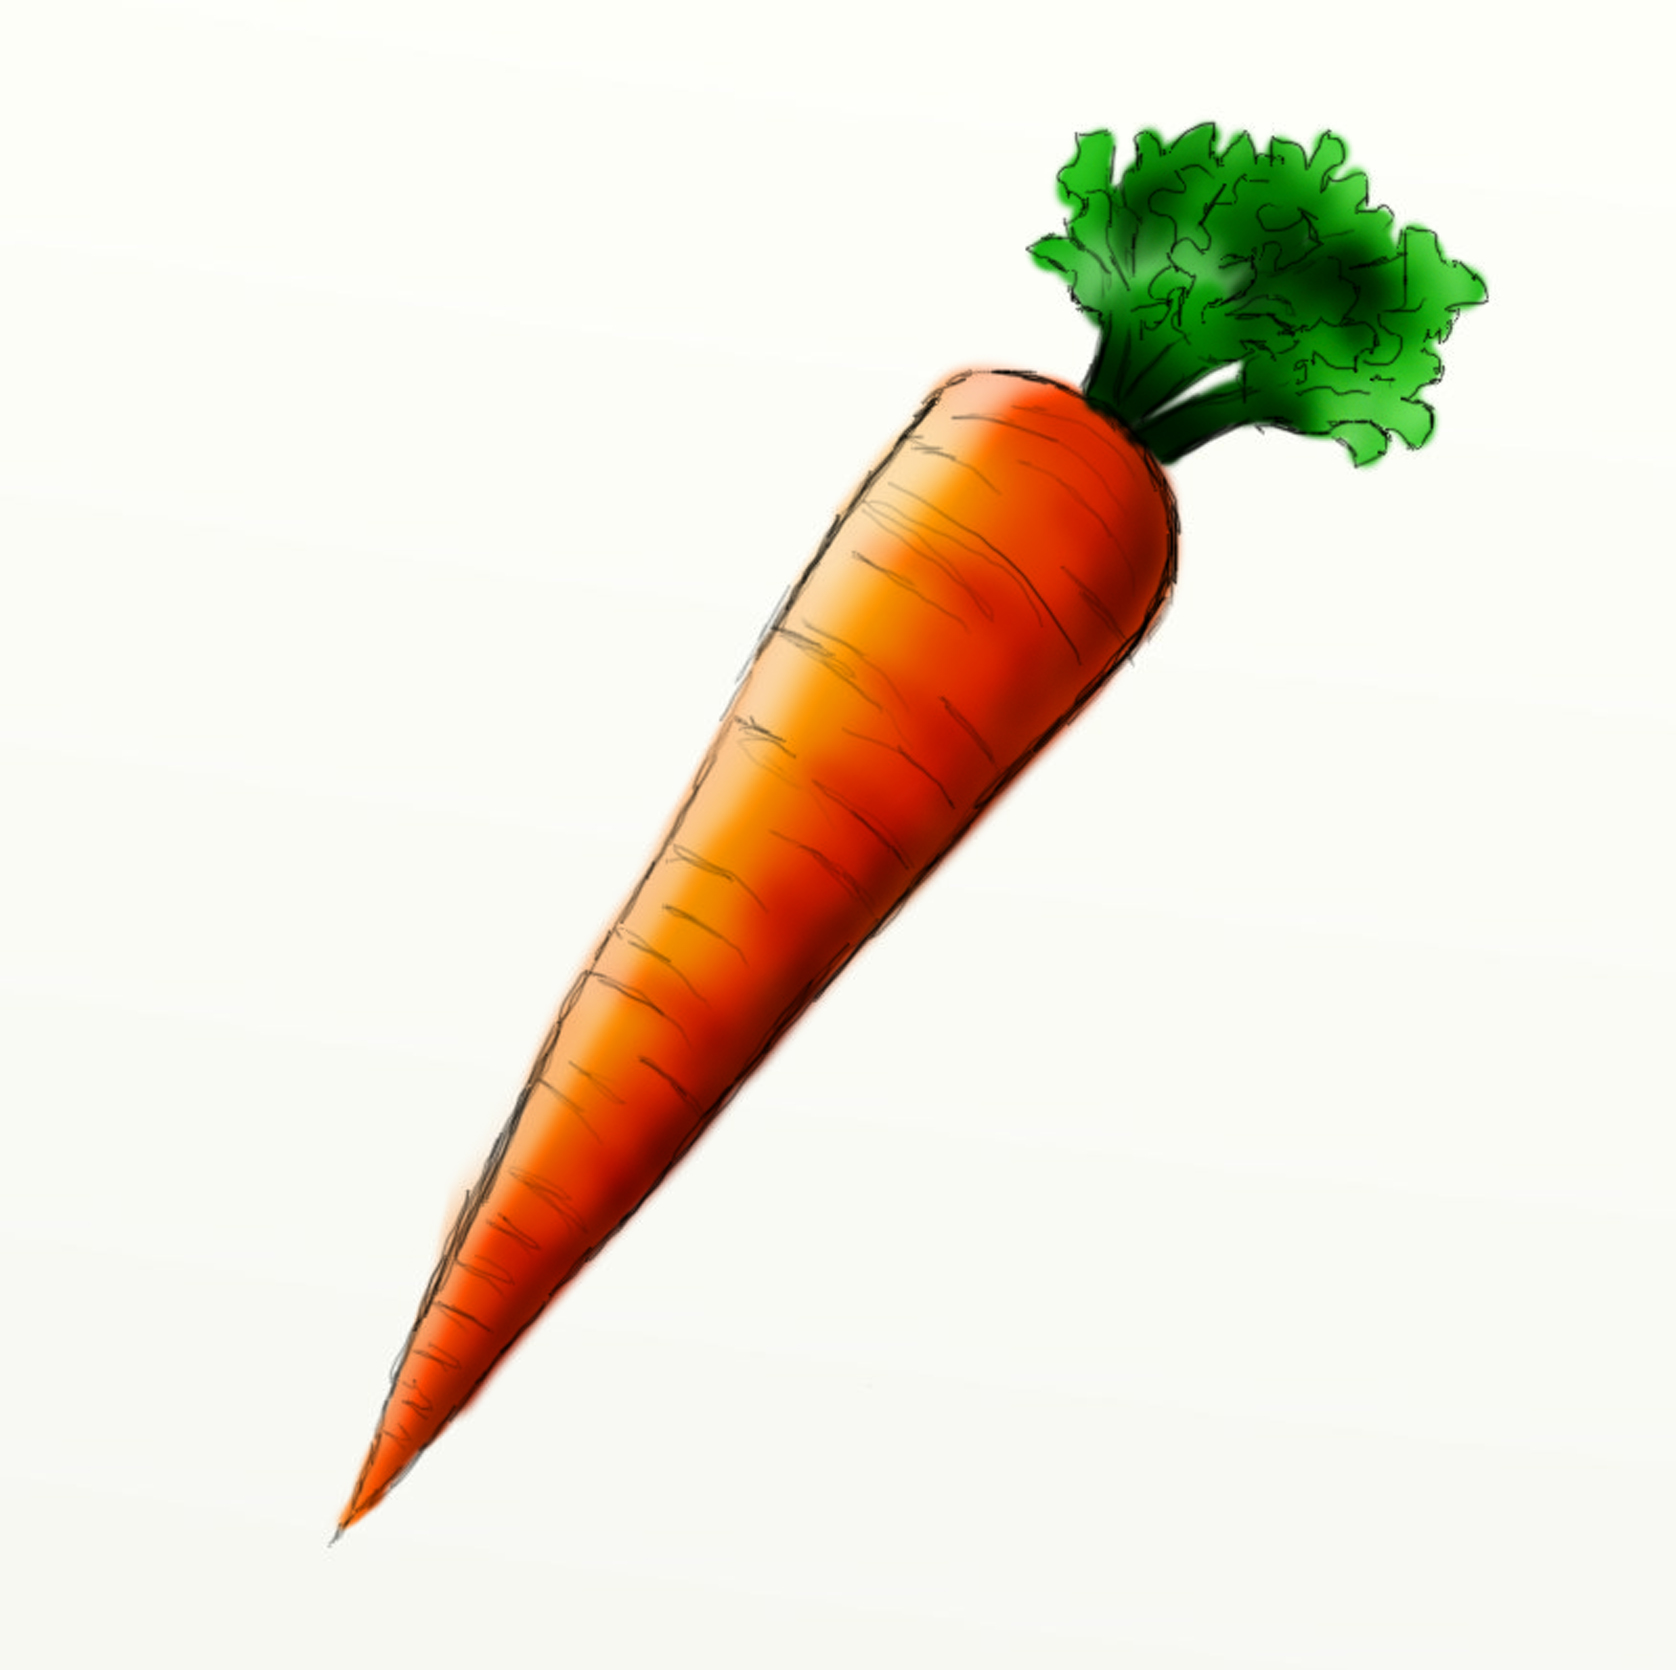 Pictures Of Carrots - ClipArt Best